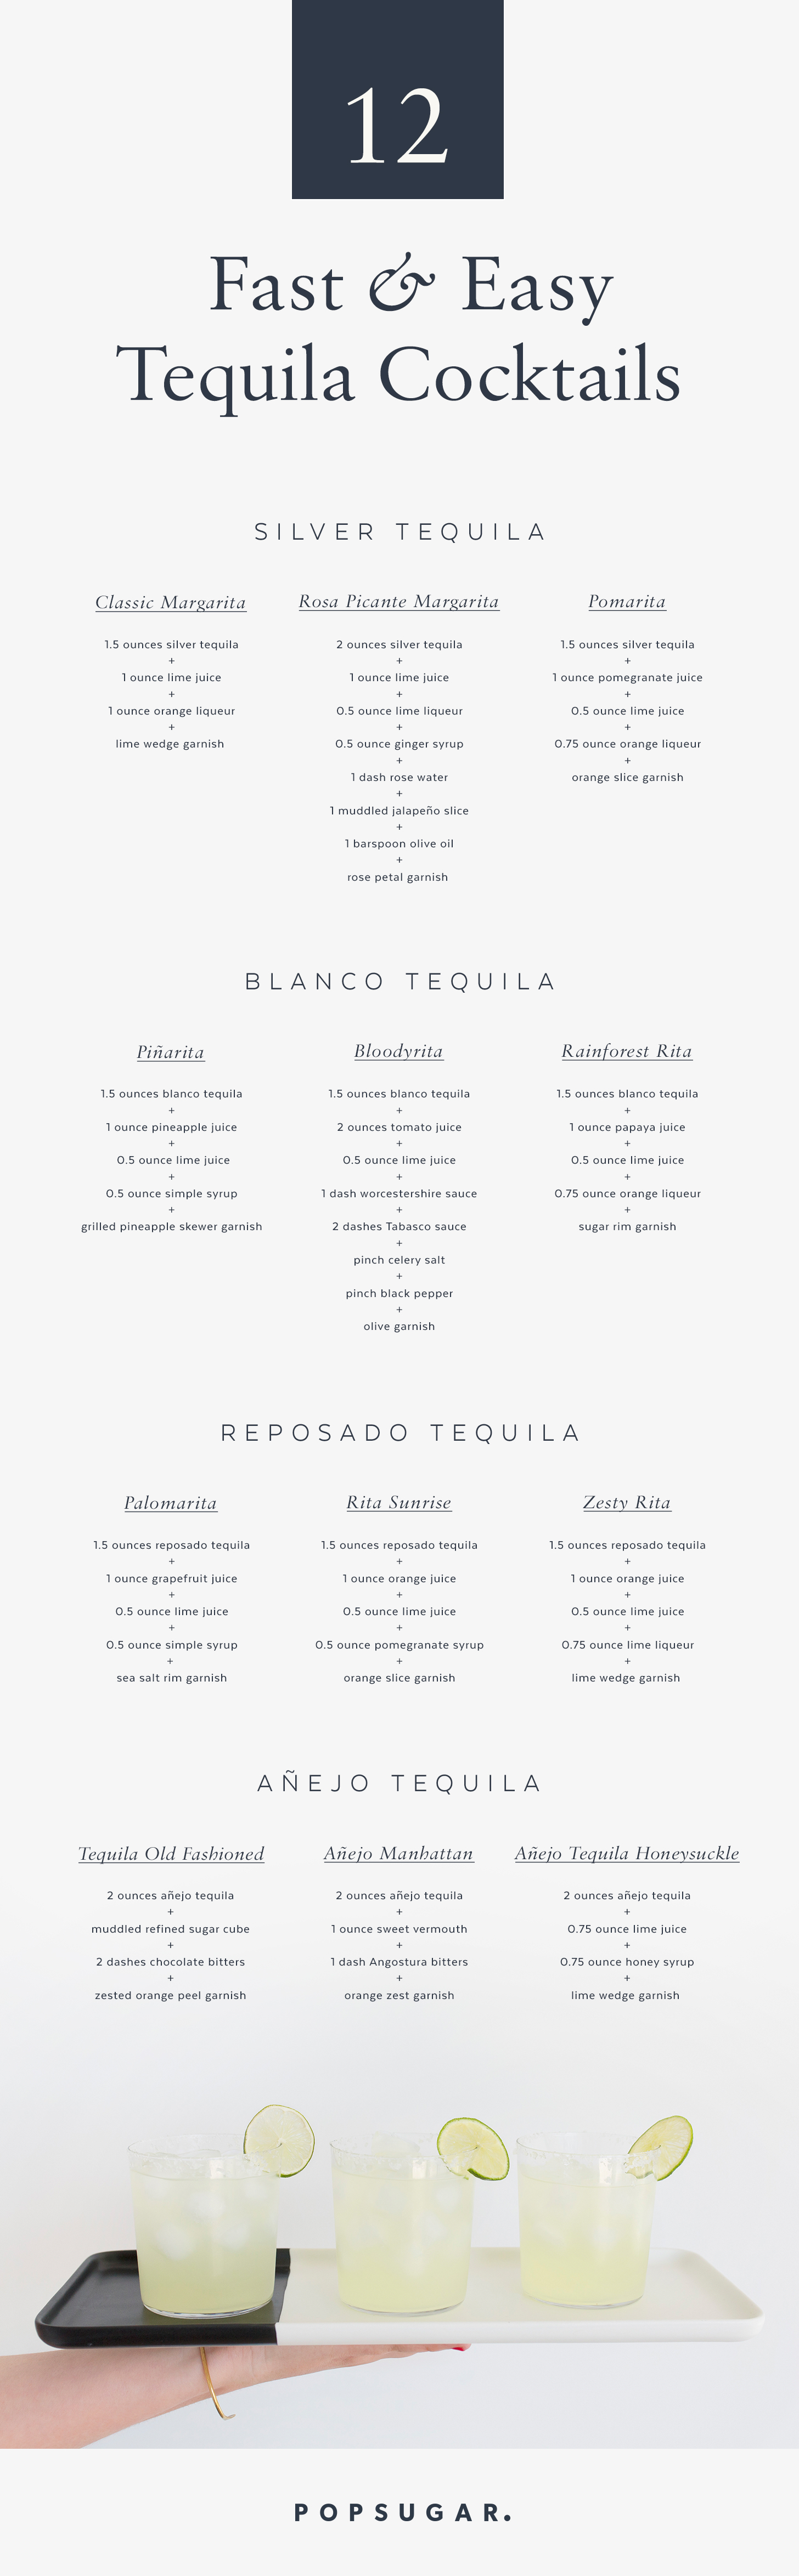 The perfect cocktail recipe for every kind of tequila.